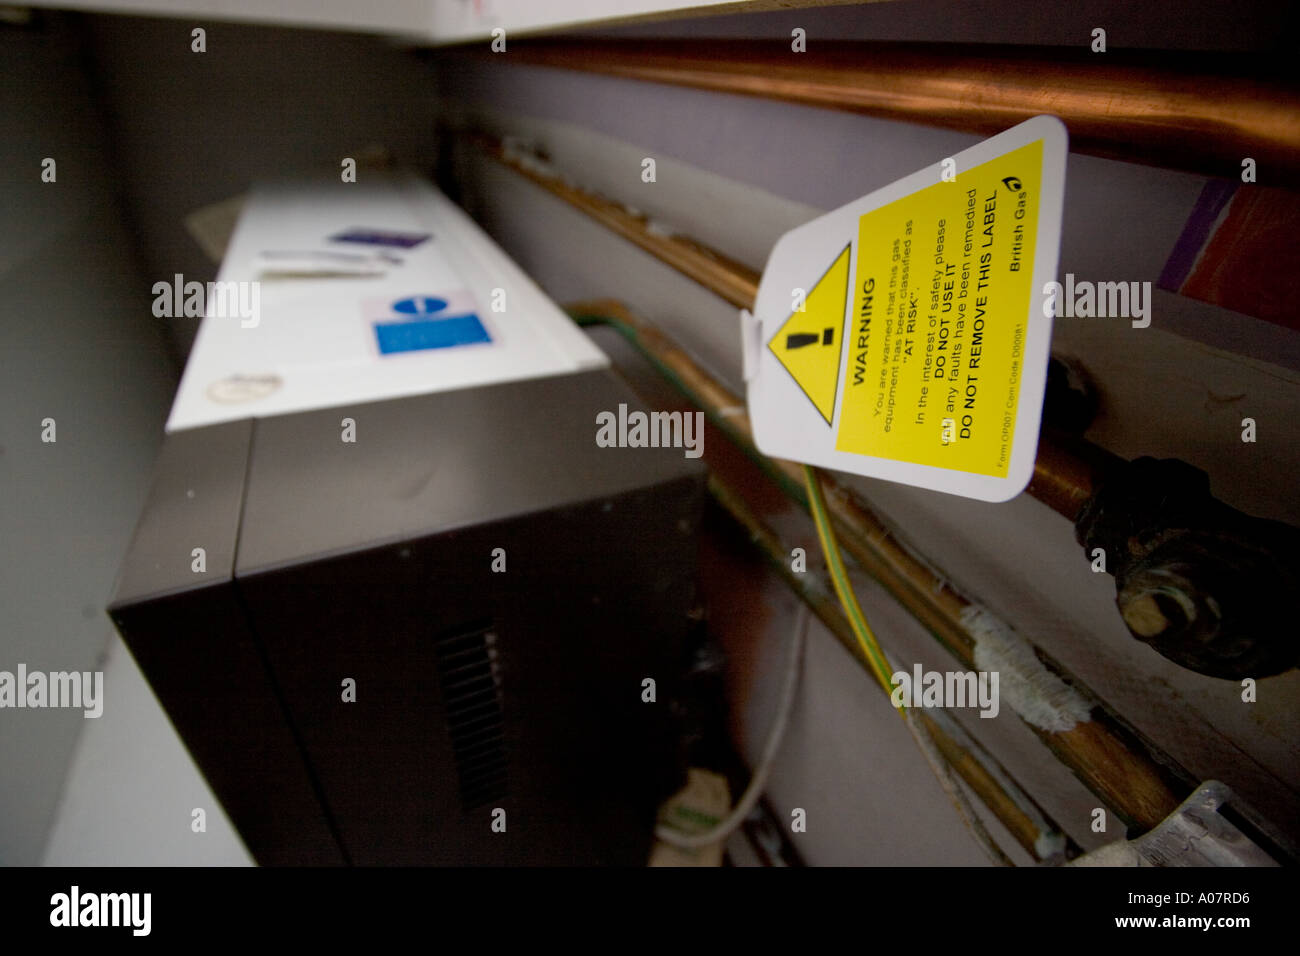 British Gas And Boiler High Resolution Stock Photography And Images Alamy